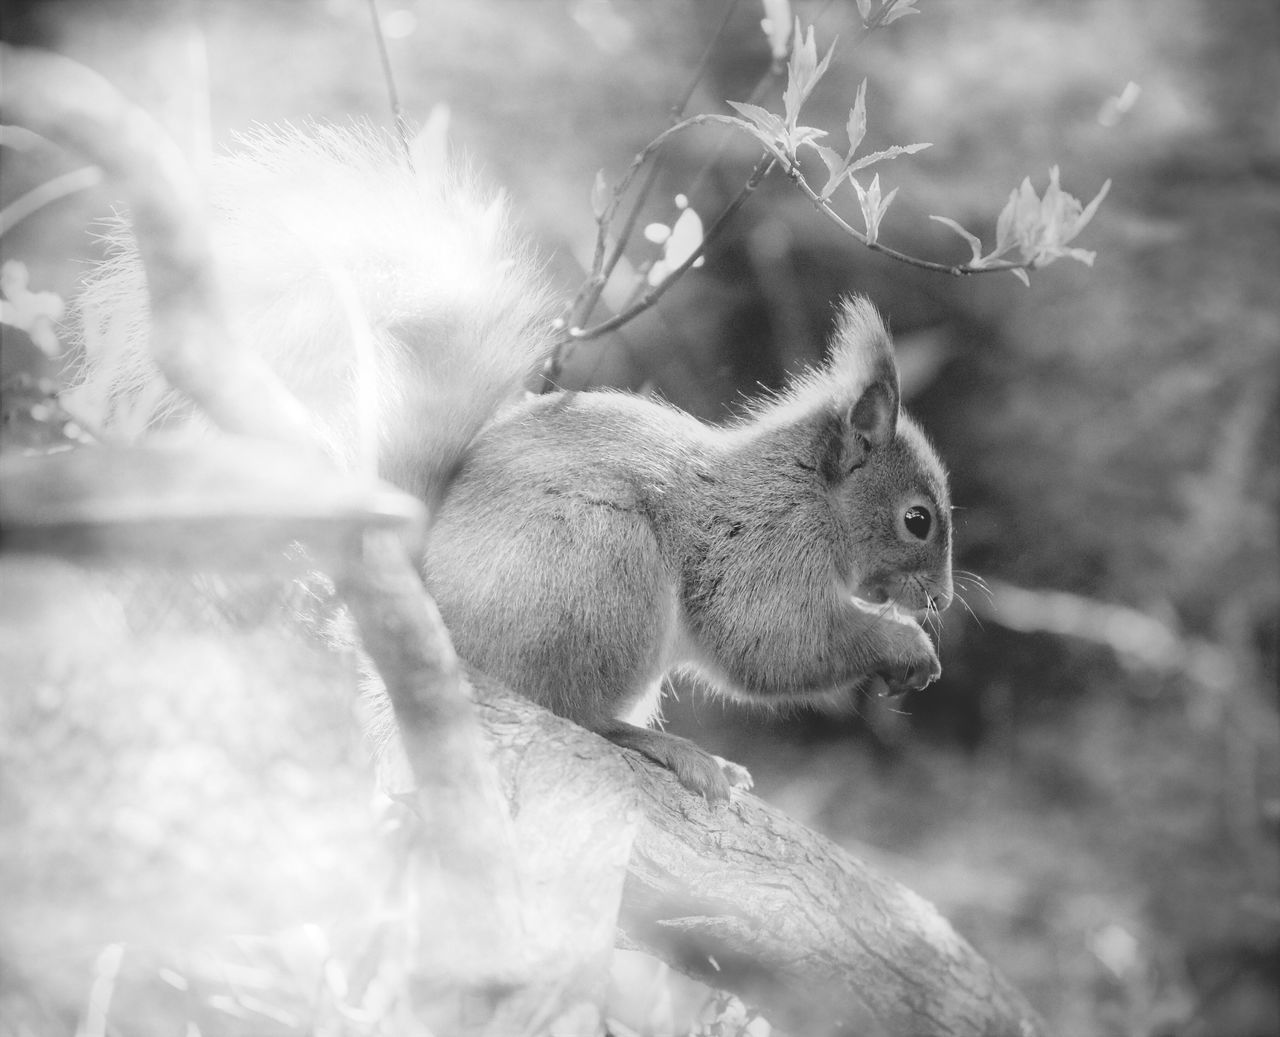 mammal, animal themes, one animal, animals in the wild, squirrel, no people, nature, animal wildlife, outdoors, day, close-up